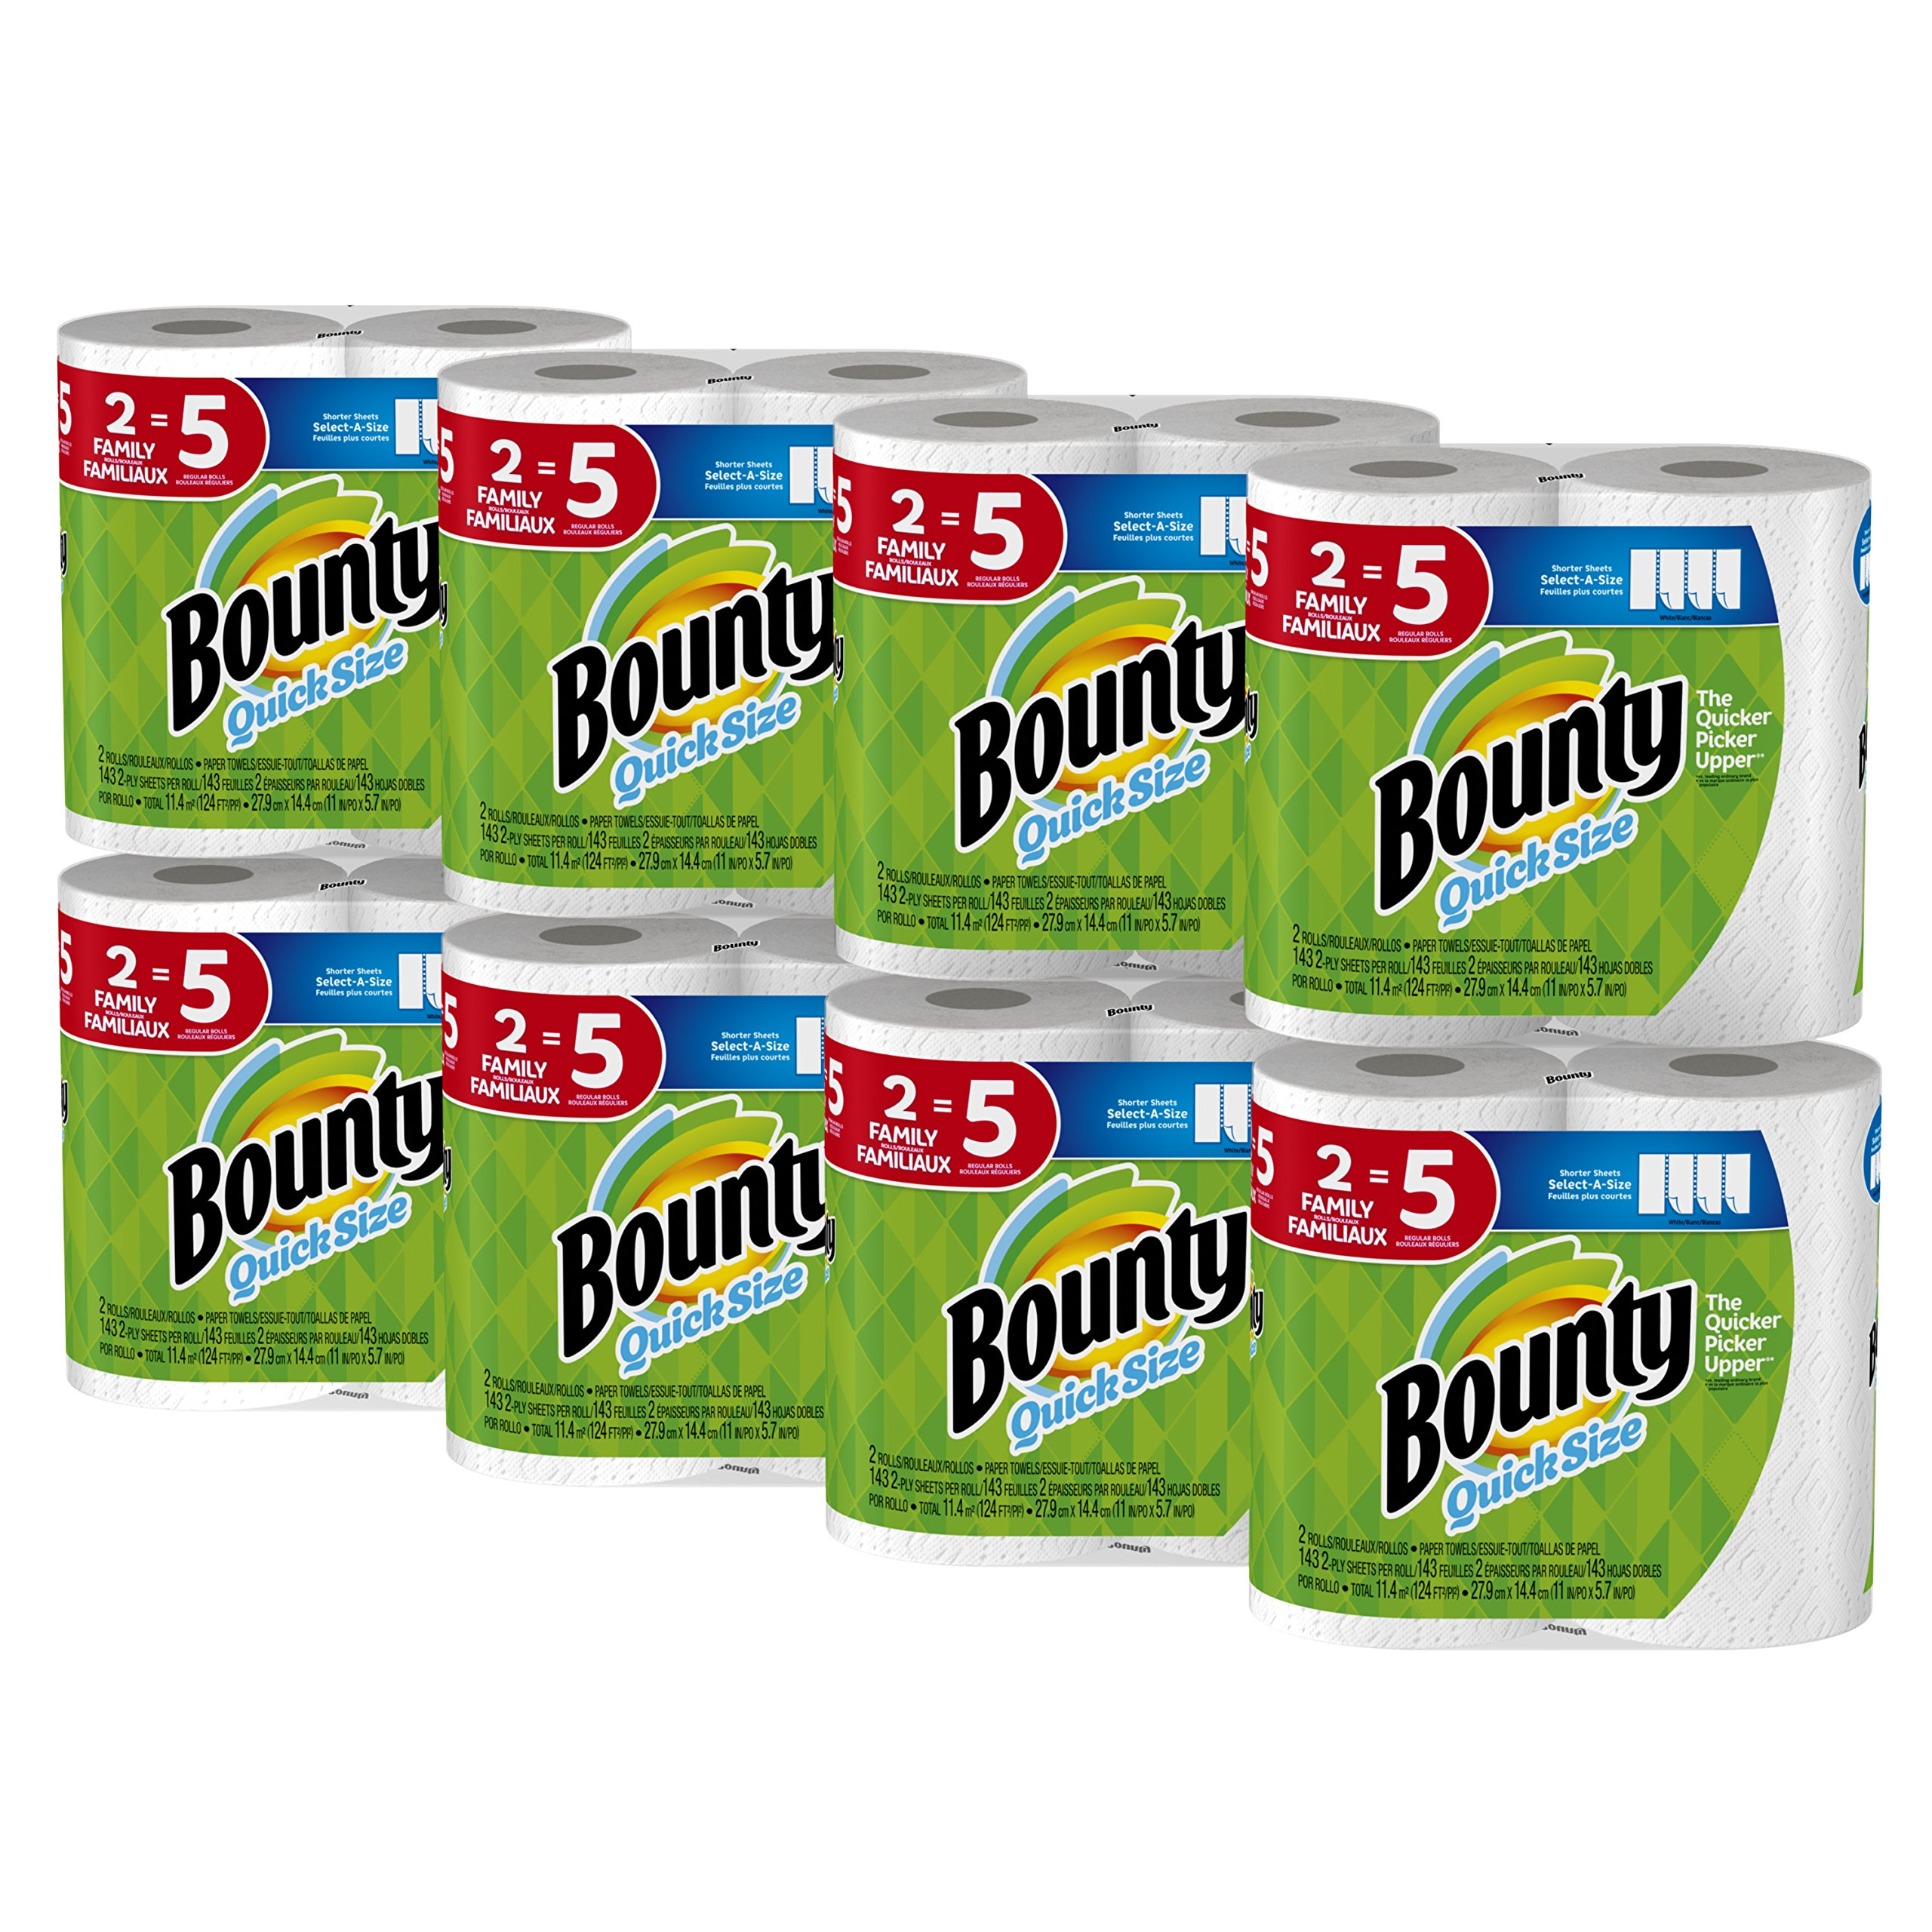 Bounty Quick-Size Paper Towels, Family Rolls, White